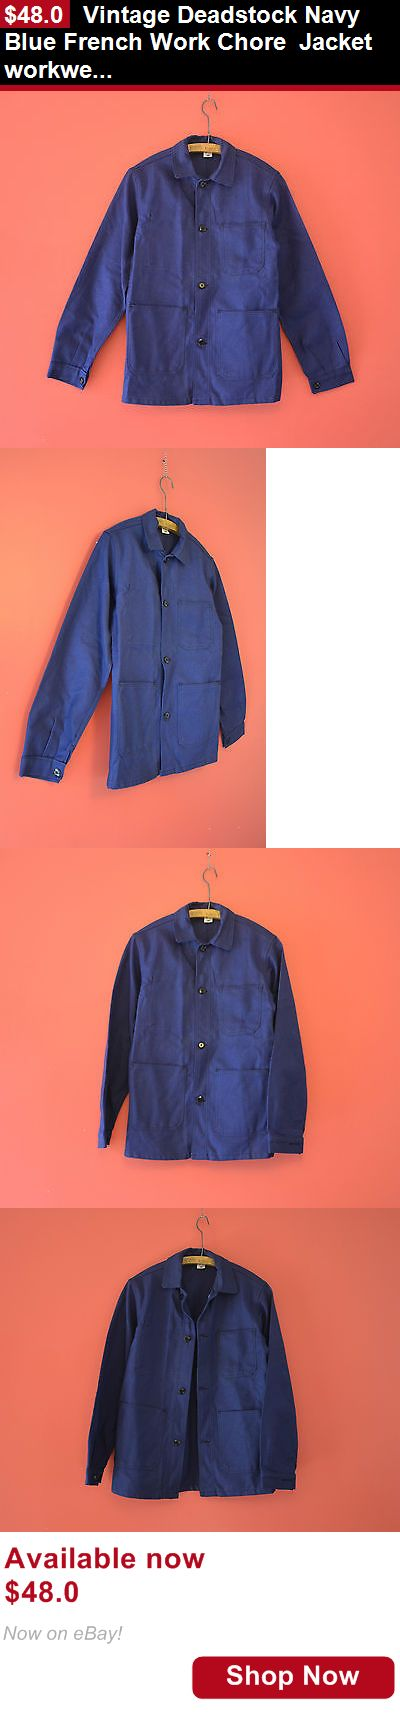 Men vintage clothing and shoes: Vintage Deadstock Navy Blue French Work Chore Jacket Workwear Folk Medium M BUY IT NOW ONLY: $48.0